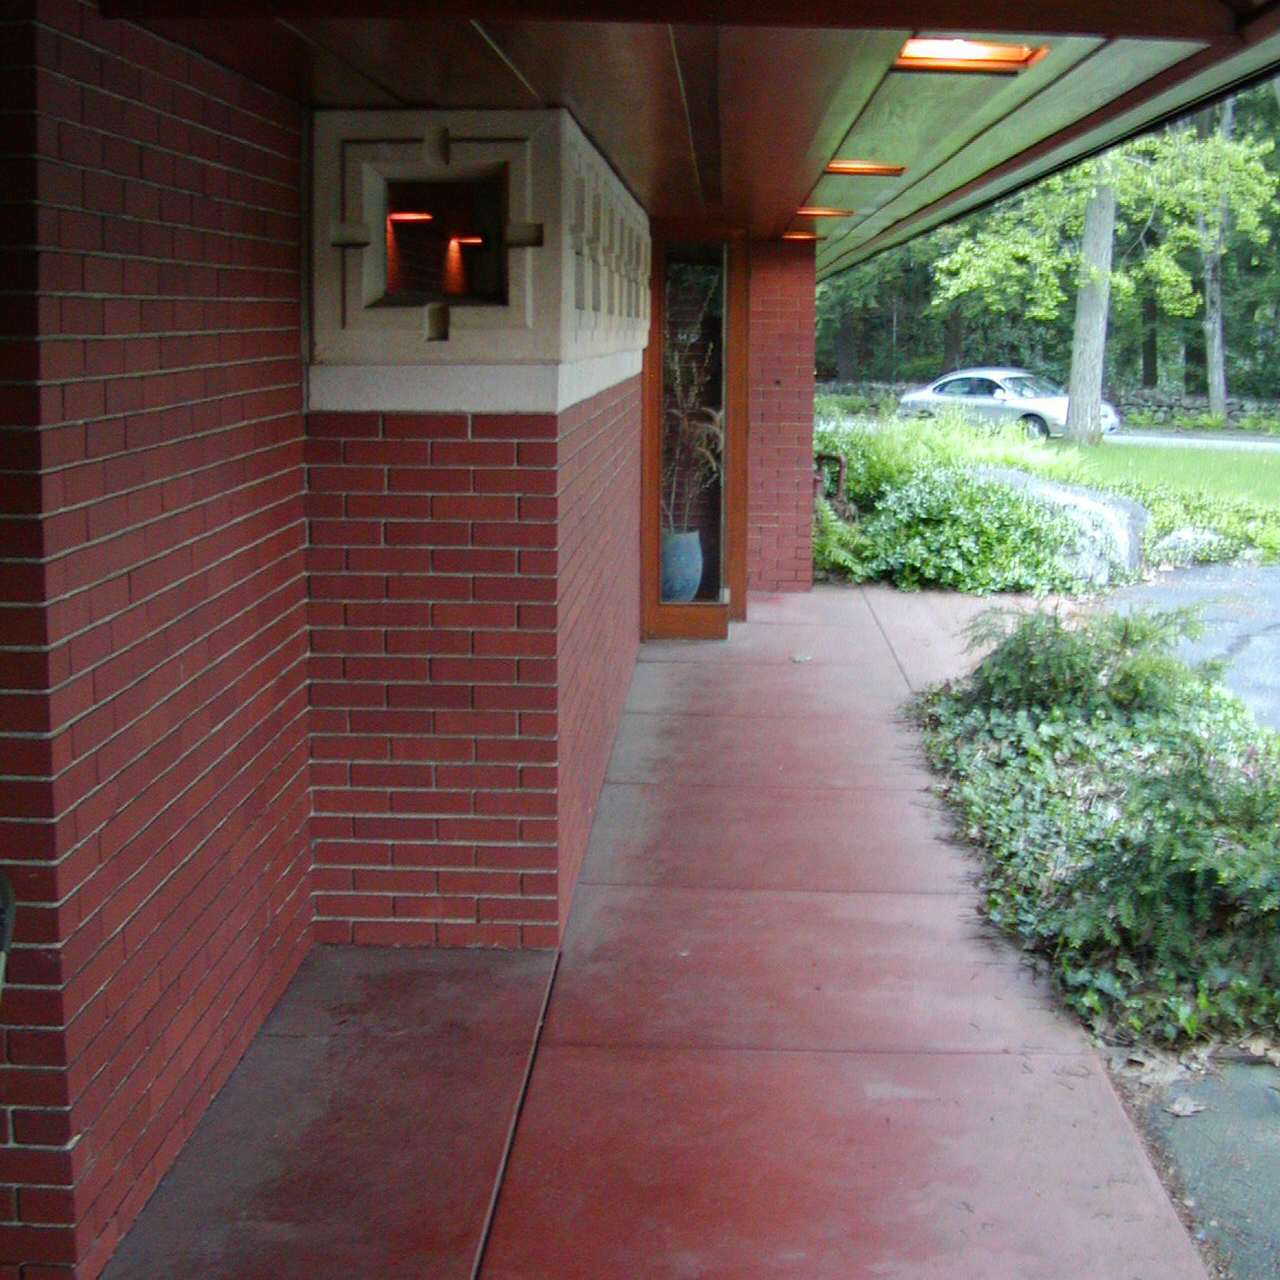 Zimmerman House entry, Frank Lloyd Wright red tile floor against red brick and light clerestories